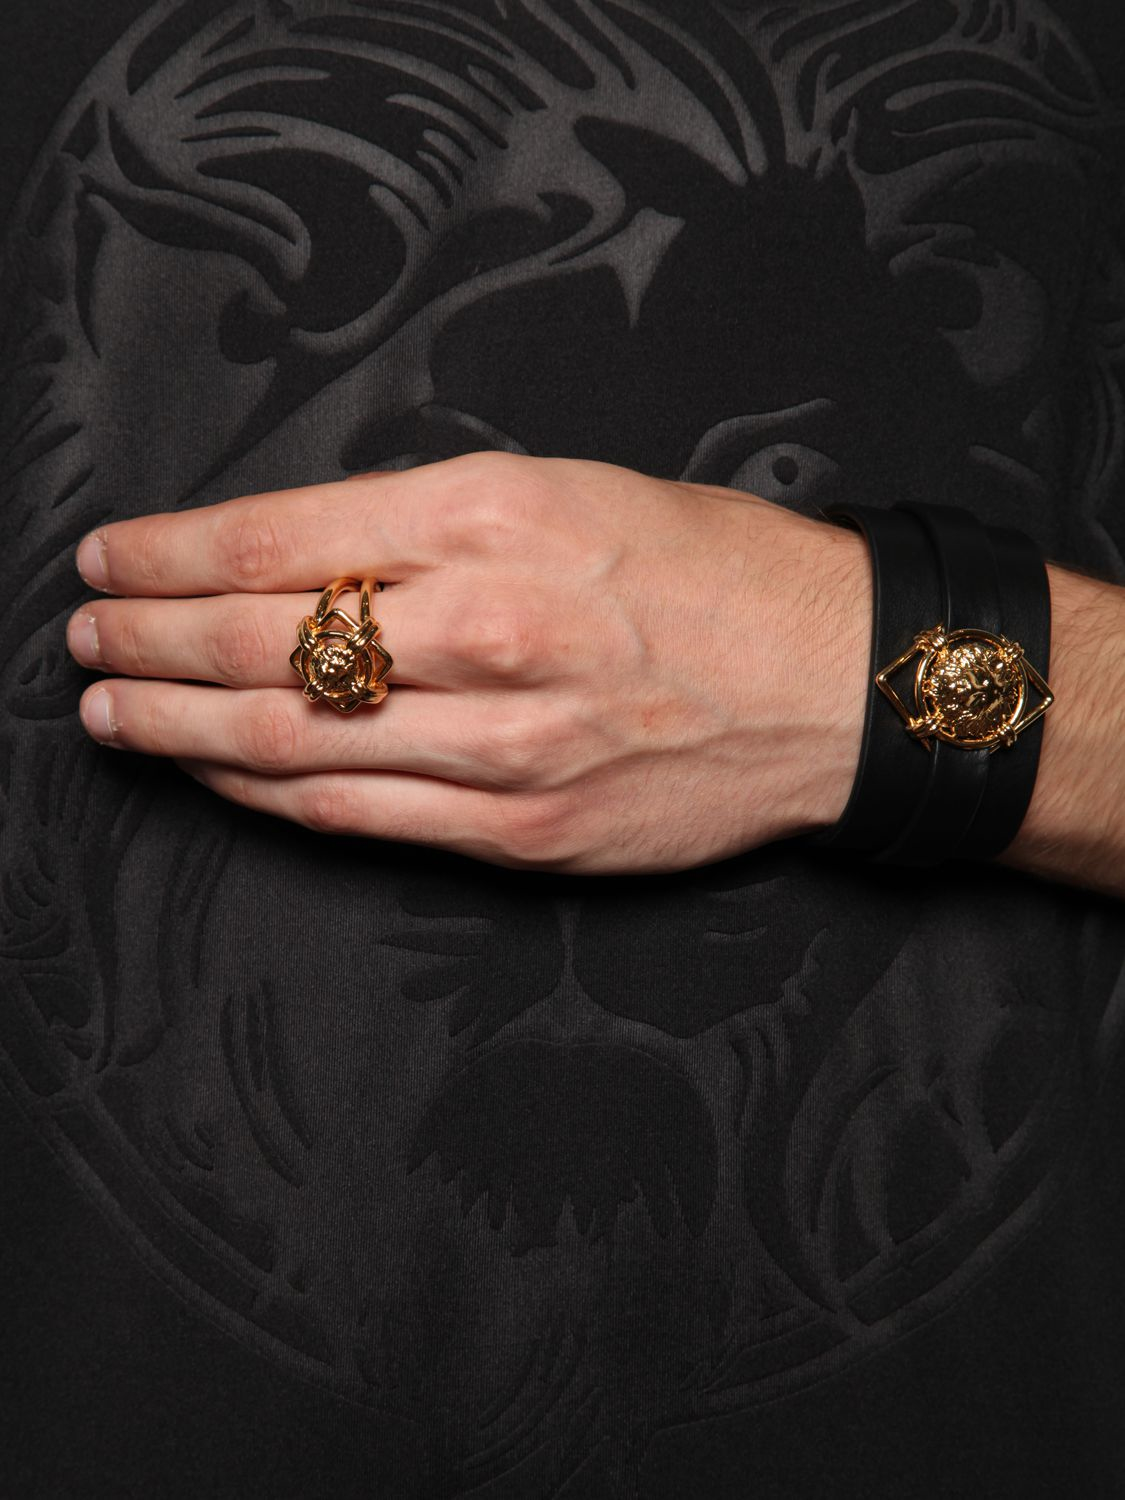 695b8c90926 Gucci Lion Head Ring Mens - Image Of Lion and Antique Sgimage.Co